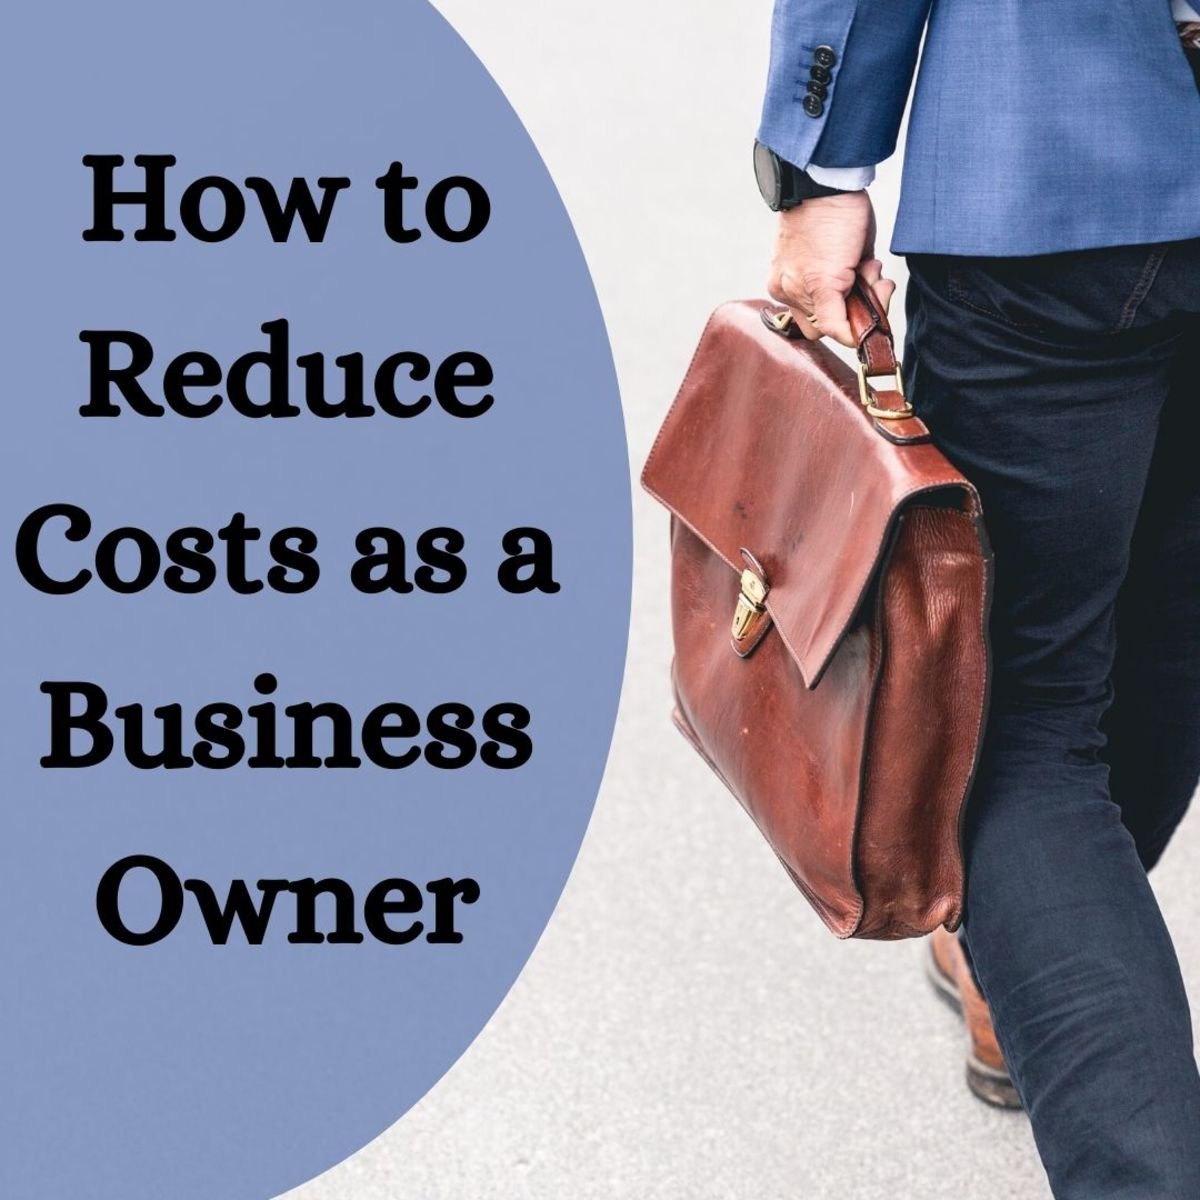 Five tips and tricks for reducing costs (for business owners)